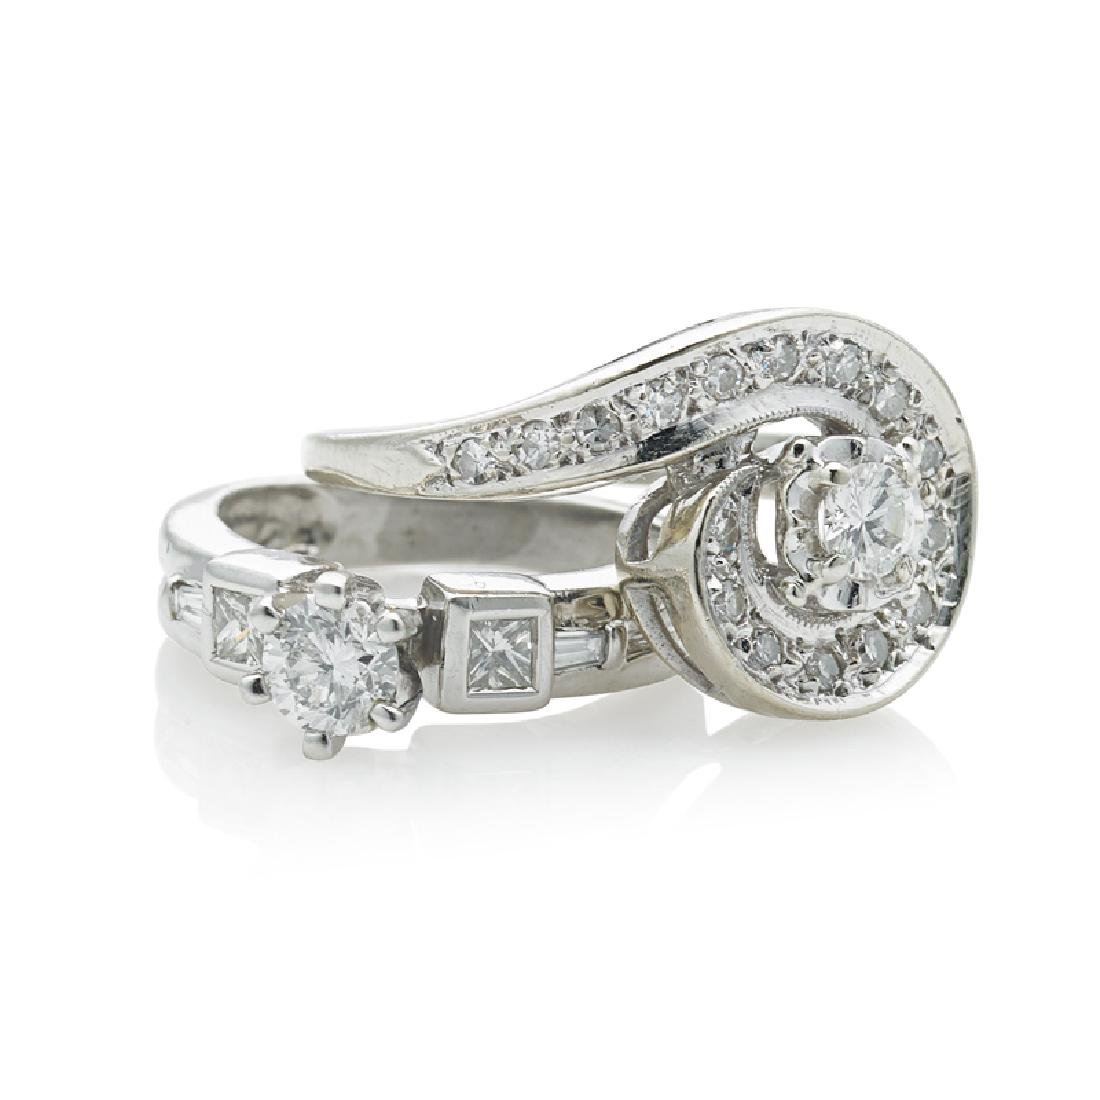 DIAMOND & PLATINUM OR WHITE GOLD RINGS